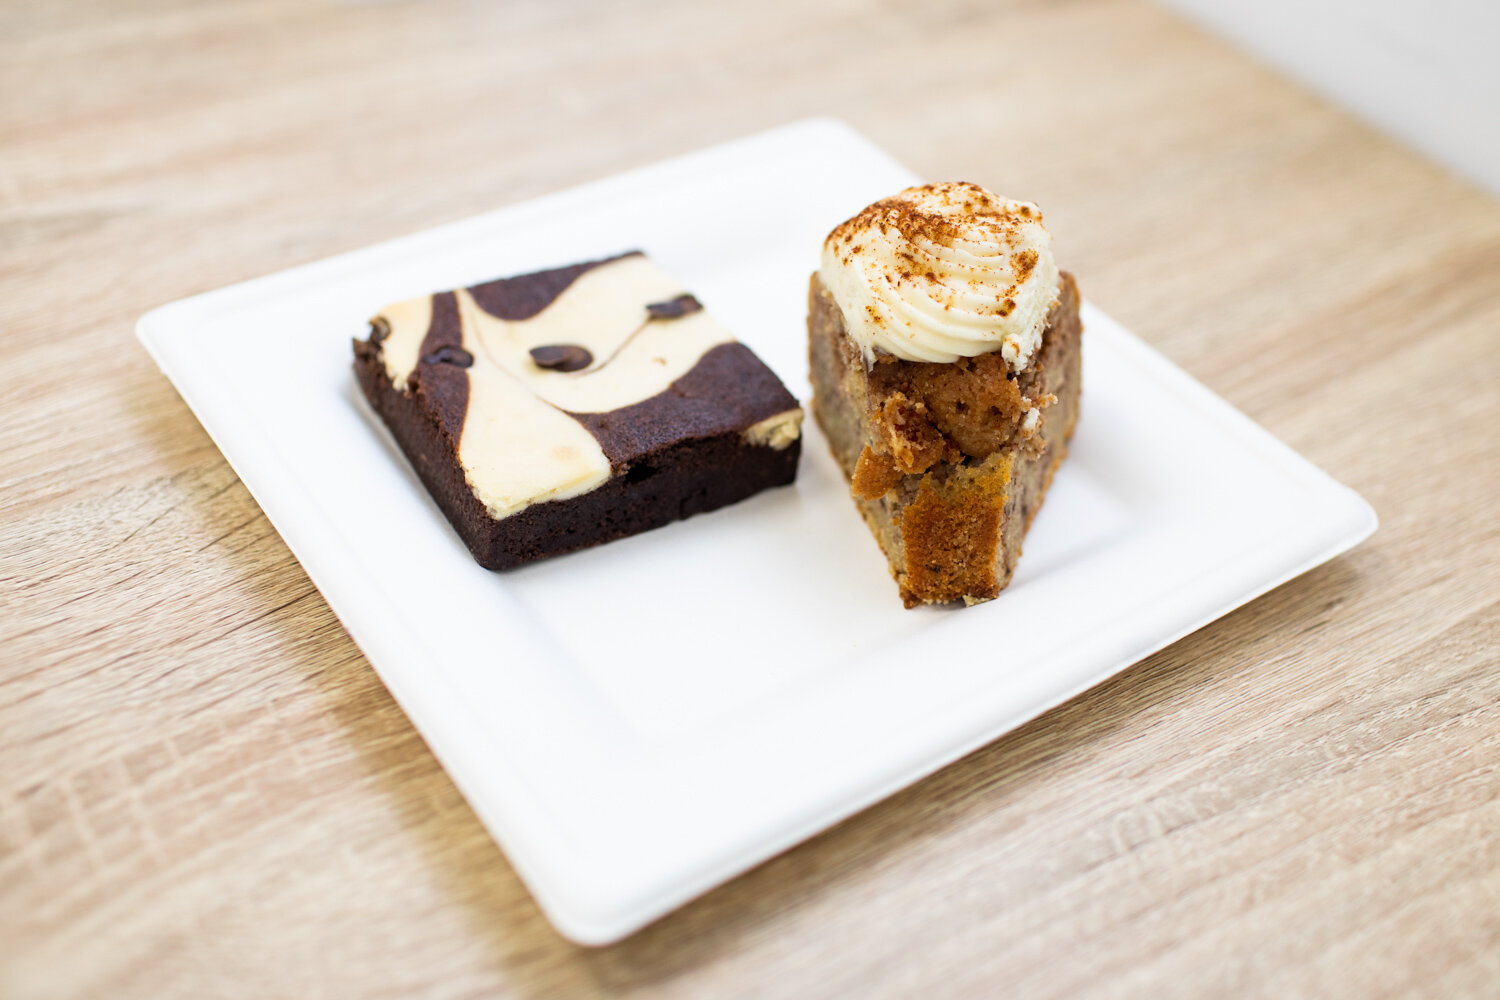 On the left: cheesecake brownie. On the right: coffee cake.